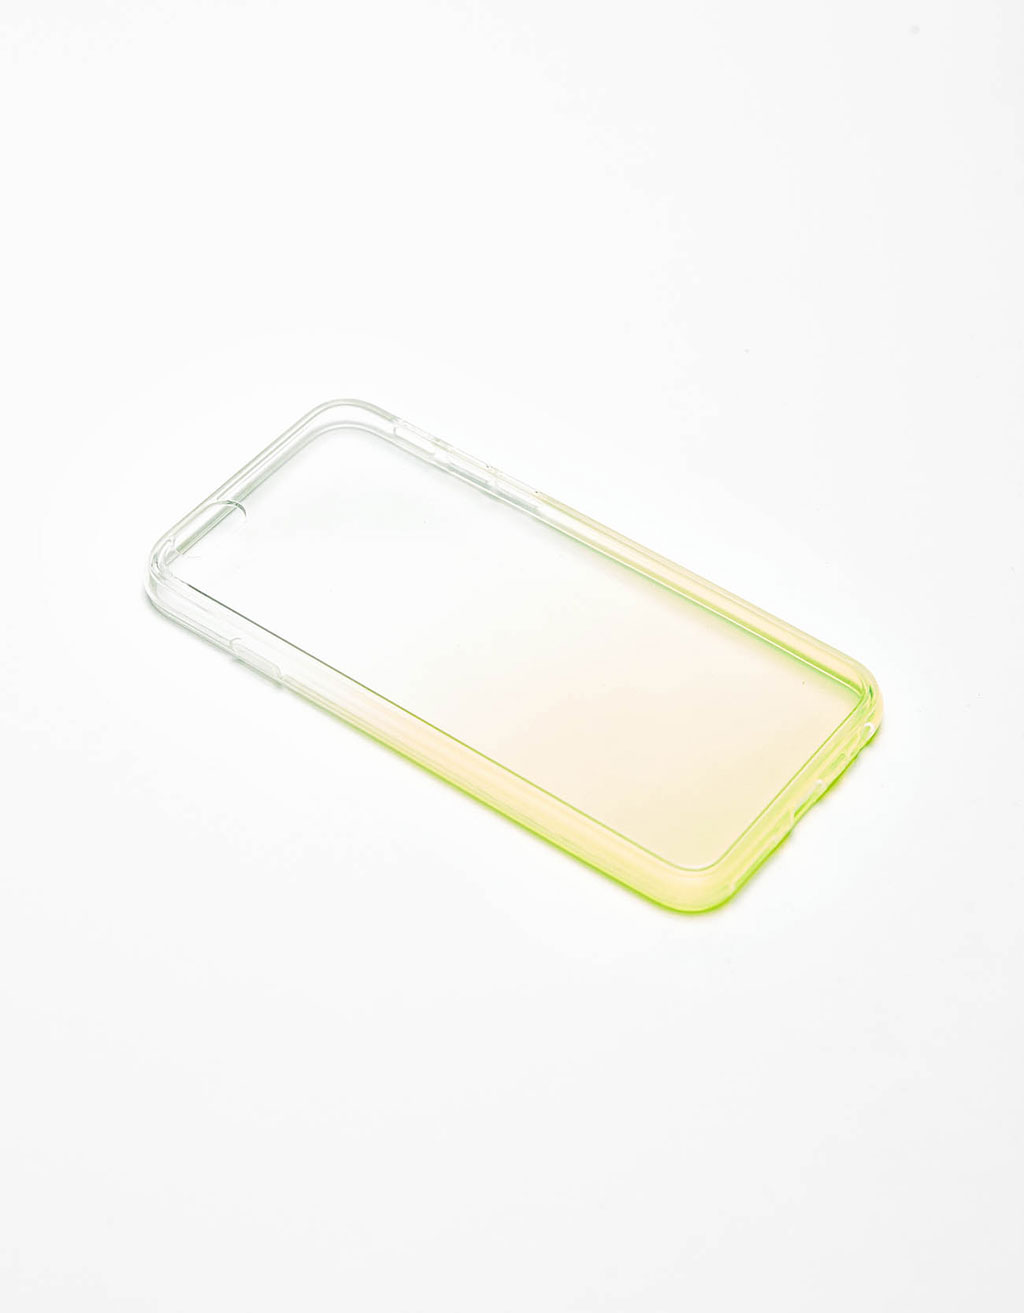 Transparent neon ombré iPhone 6/6s case